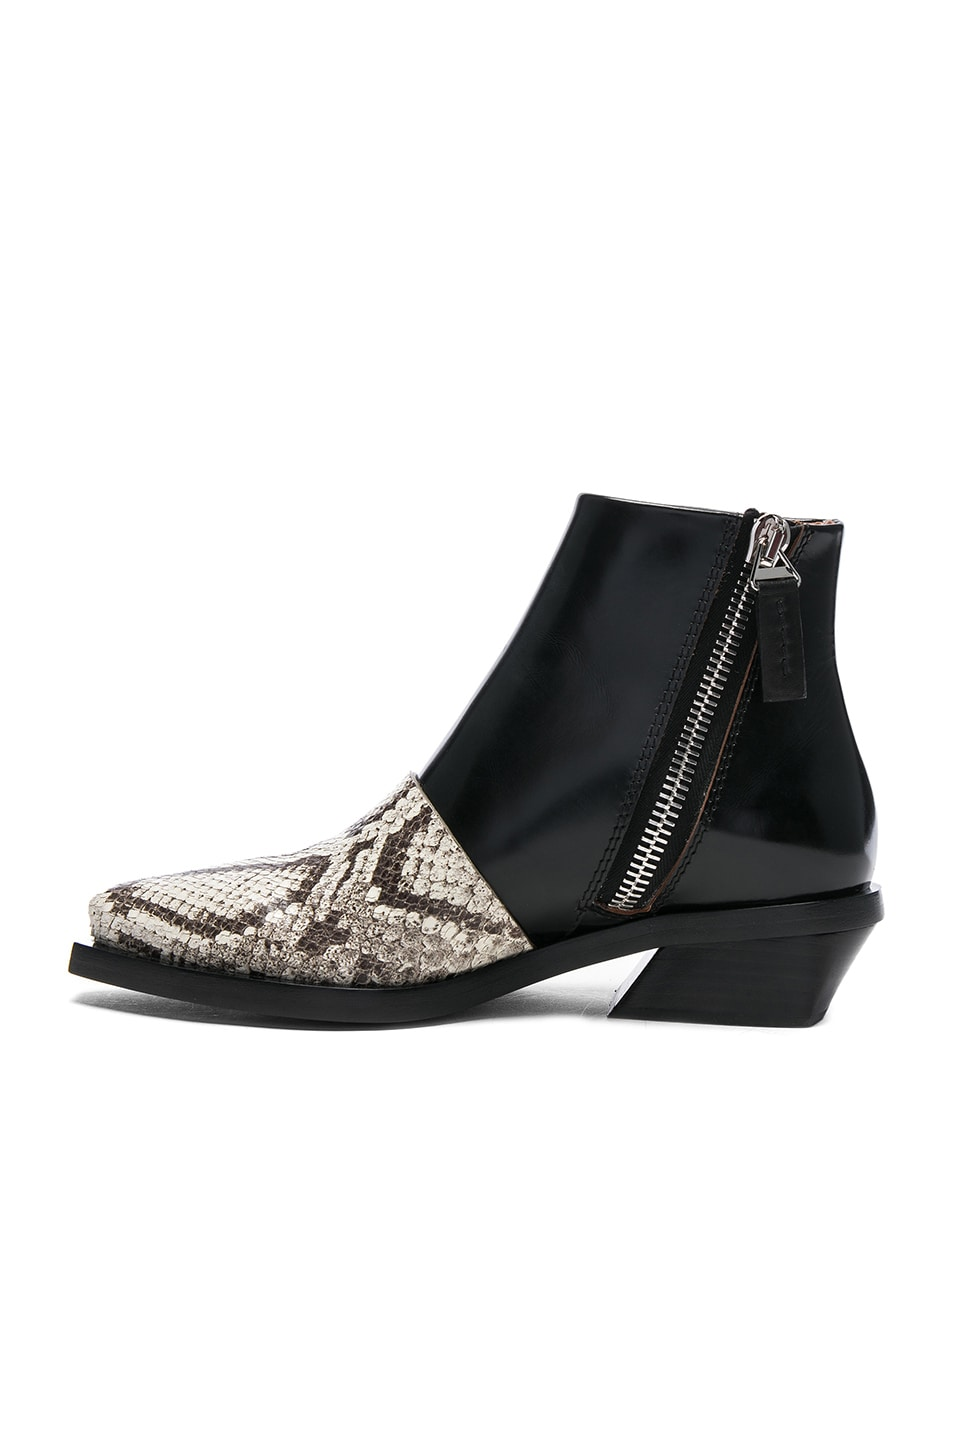 Image 5 of Proenza Schouler Leather & Snakeskin Ankle Boots in Black & Natural